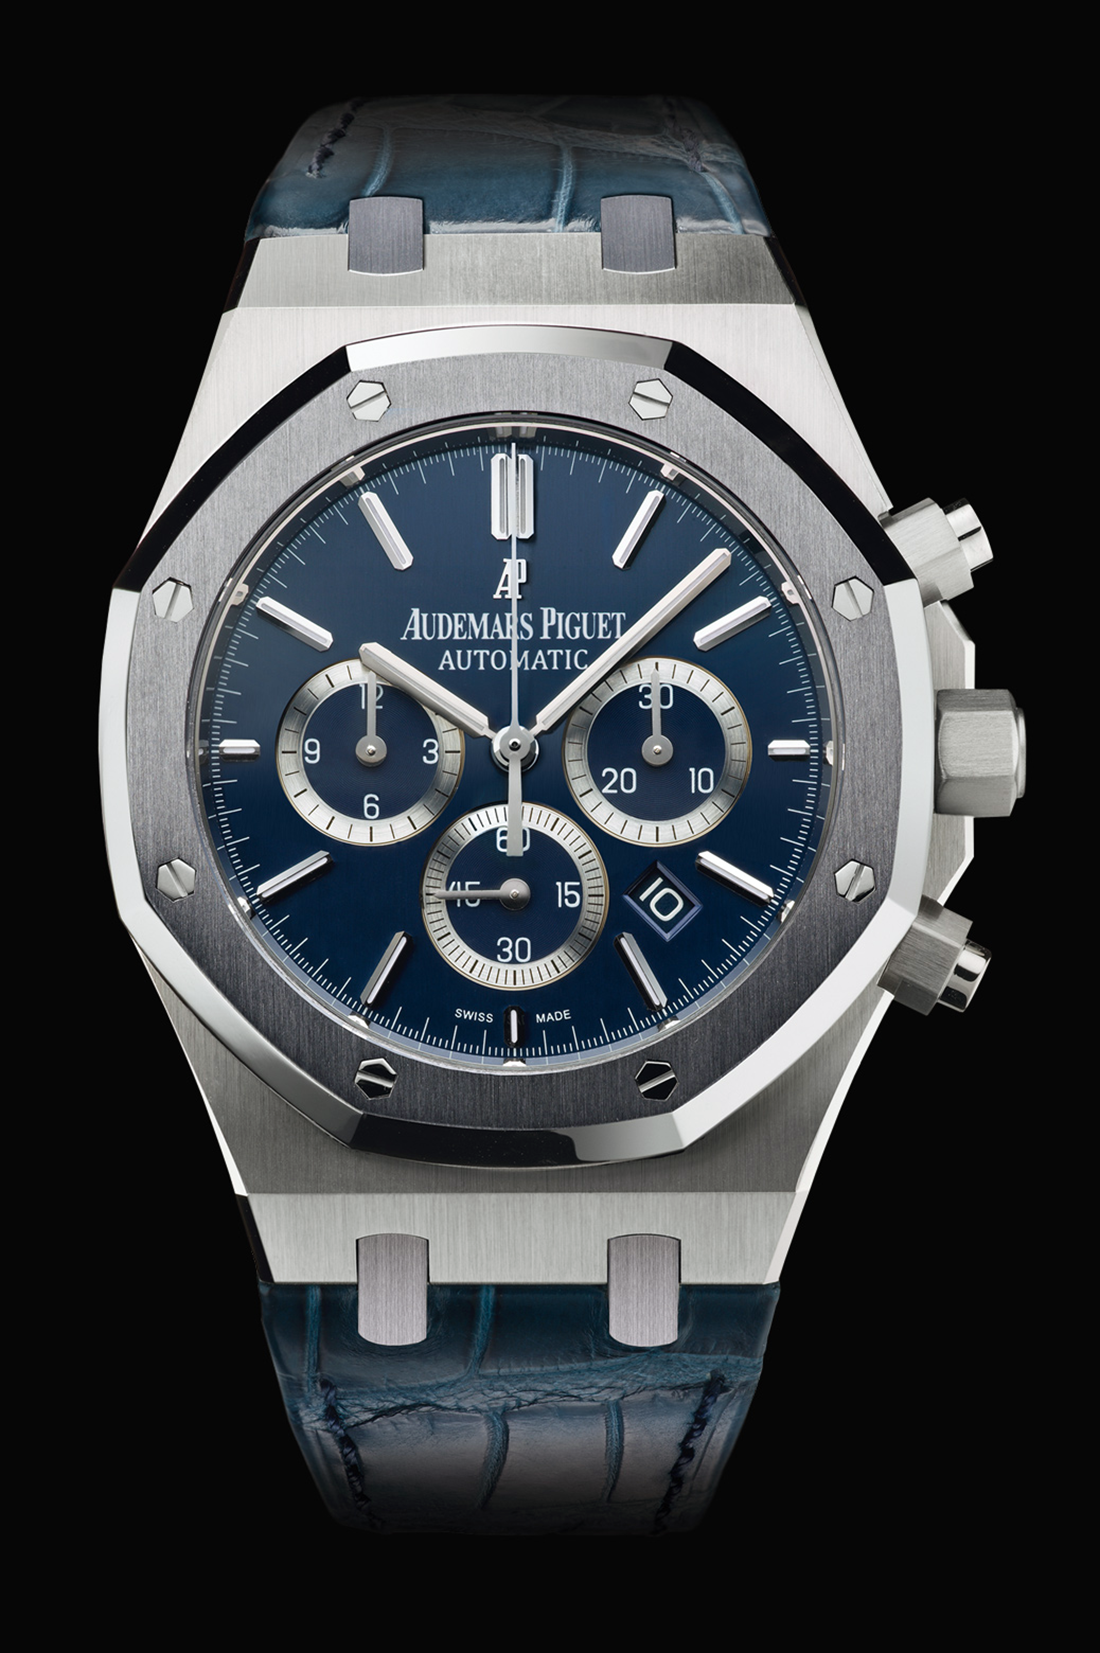 Designapplause Royal Oak Leo Messi Watch Audemars Piguet